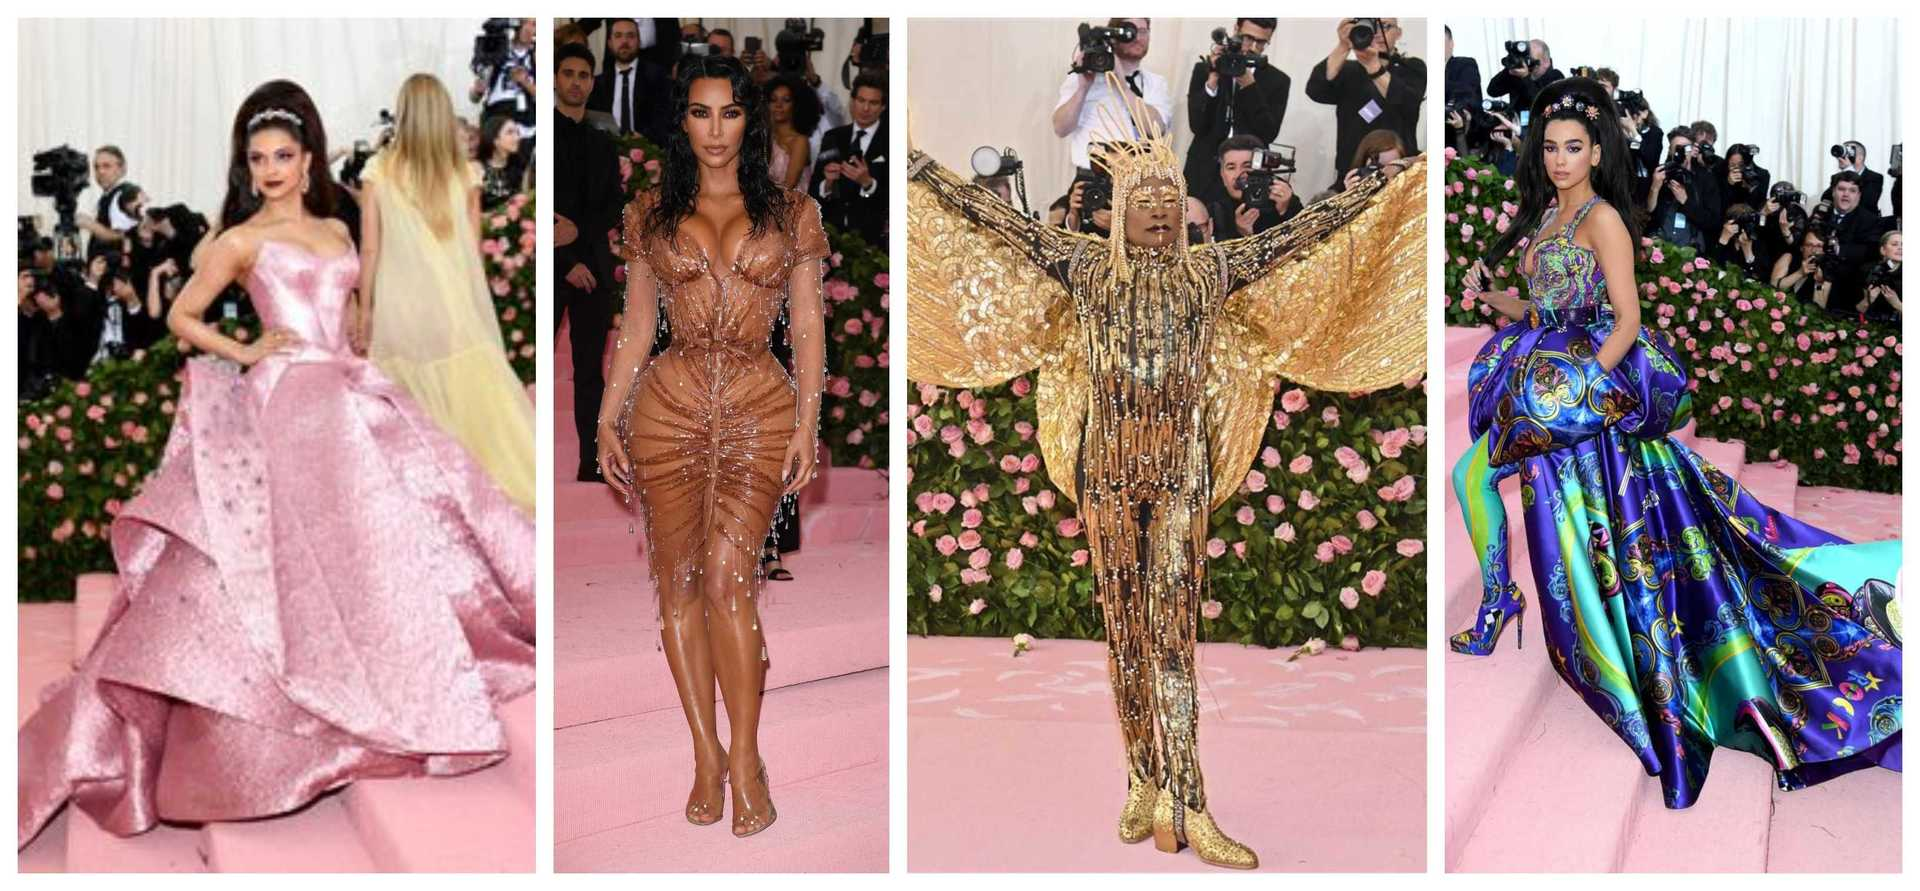 Met Gala 2019 - Everything you need to know and the 15 Best Dressed image